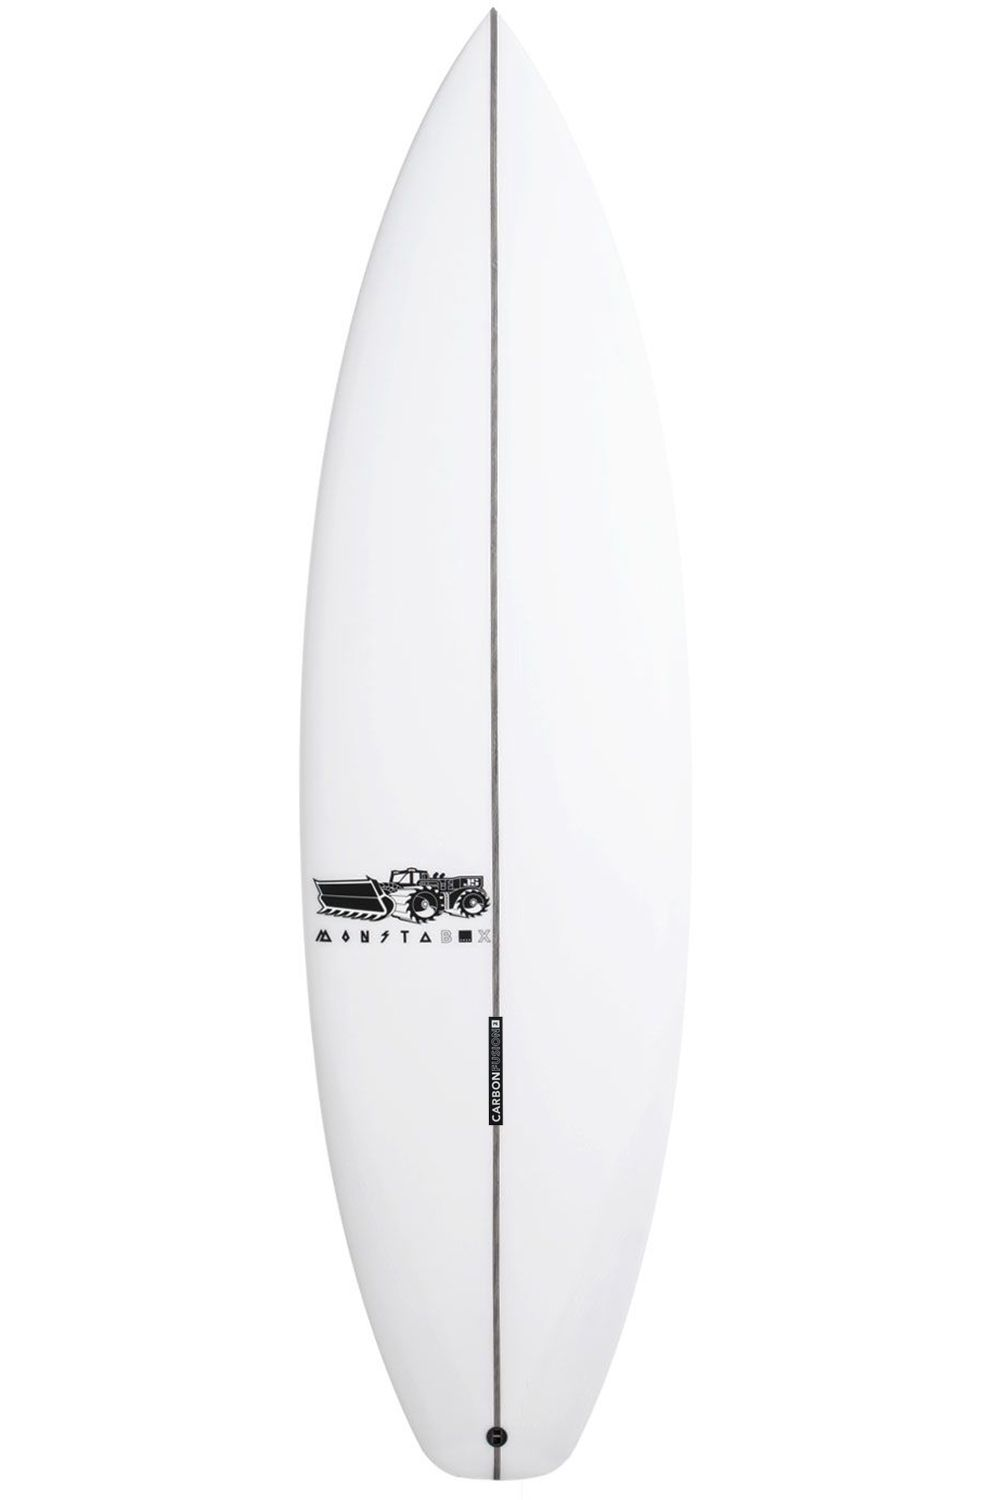 JS Surf Board 5'6 MONSTA BOX 2020 YOUTH PE Squash Tail - White FCS II 5ft6